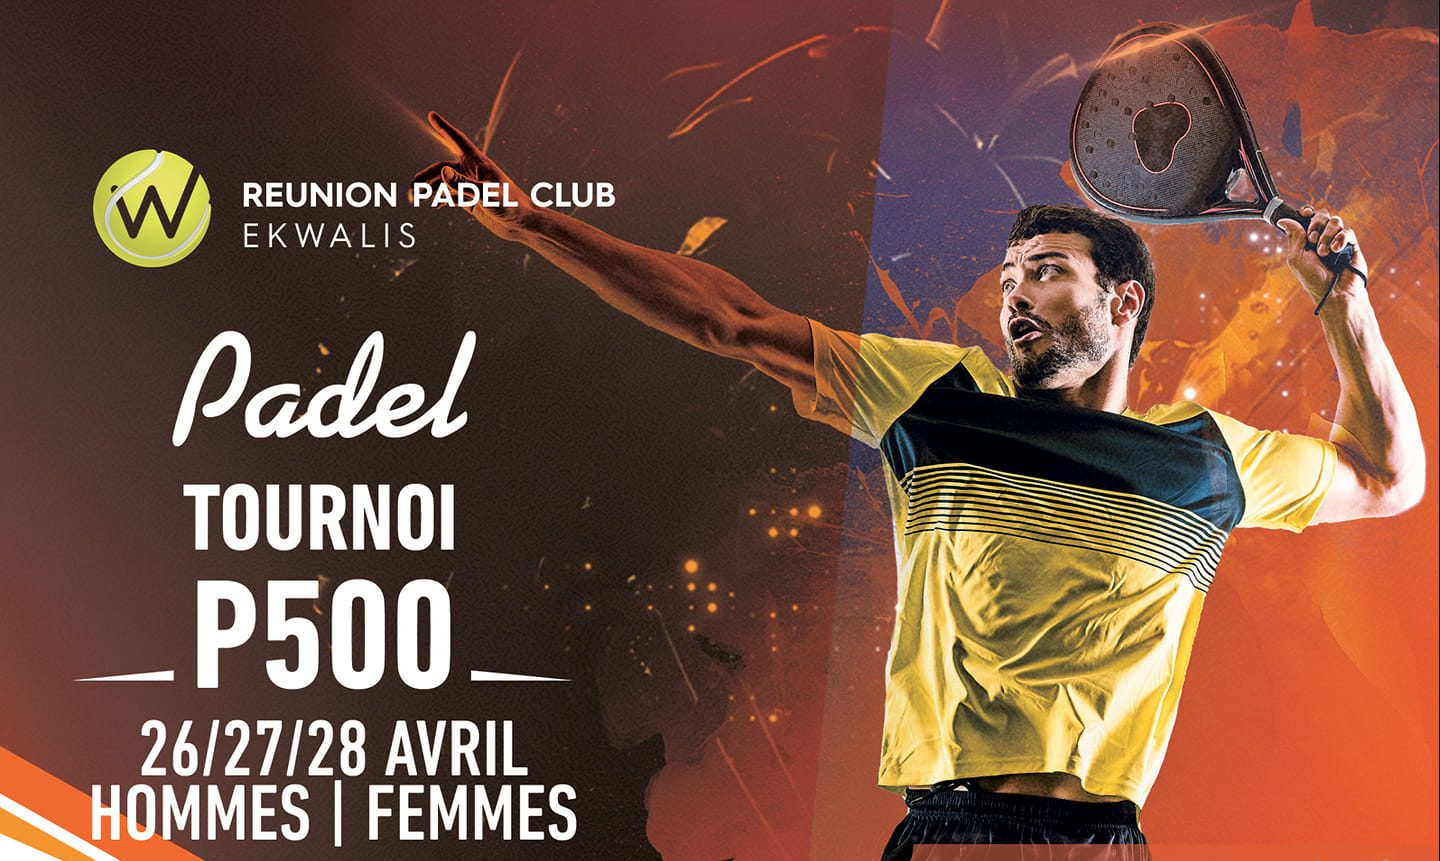 P500 - Padel Club Meeting - 26 na 28 w kwietniu